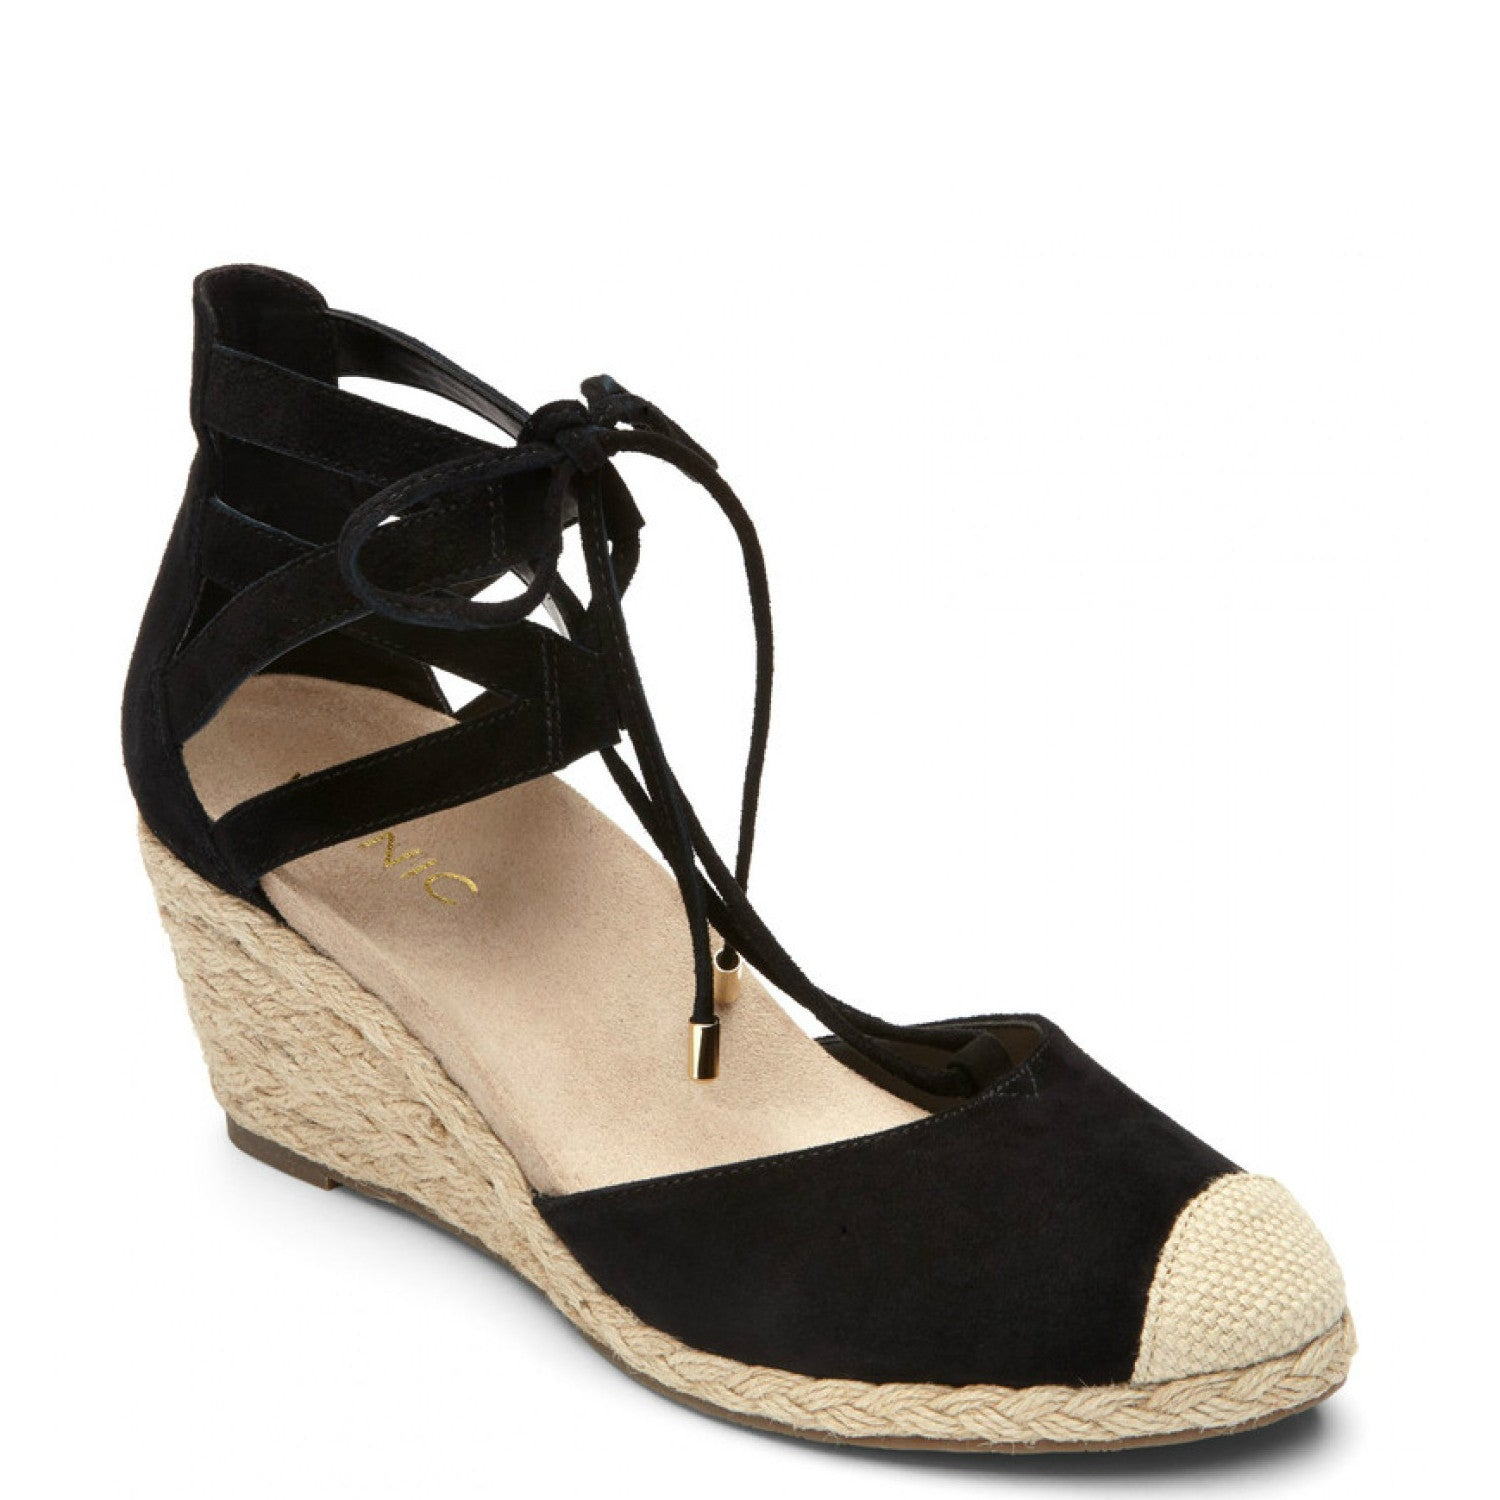 Calypso Leather Slingback Wedges sale low price Gj8DhRFBY